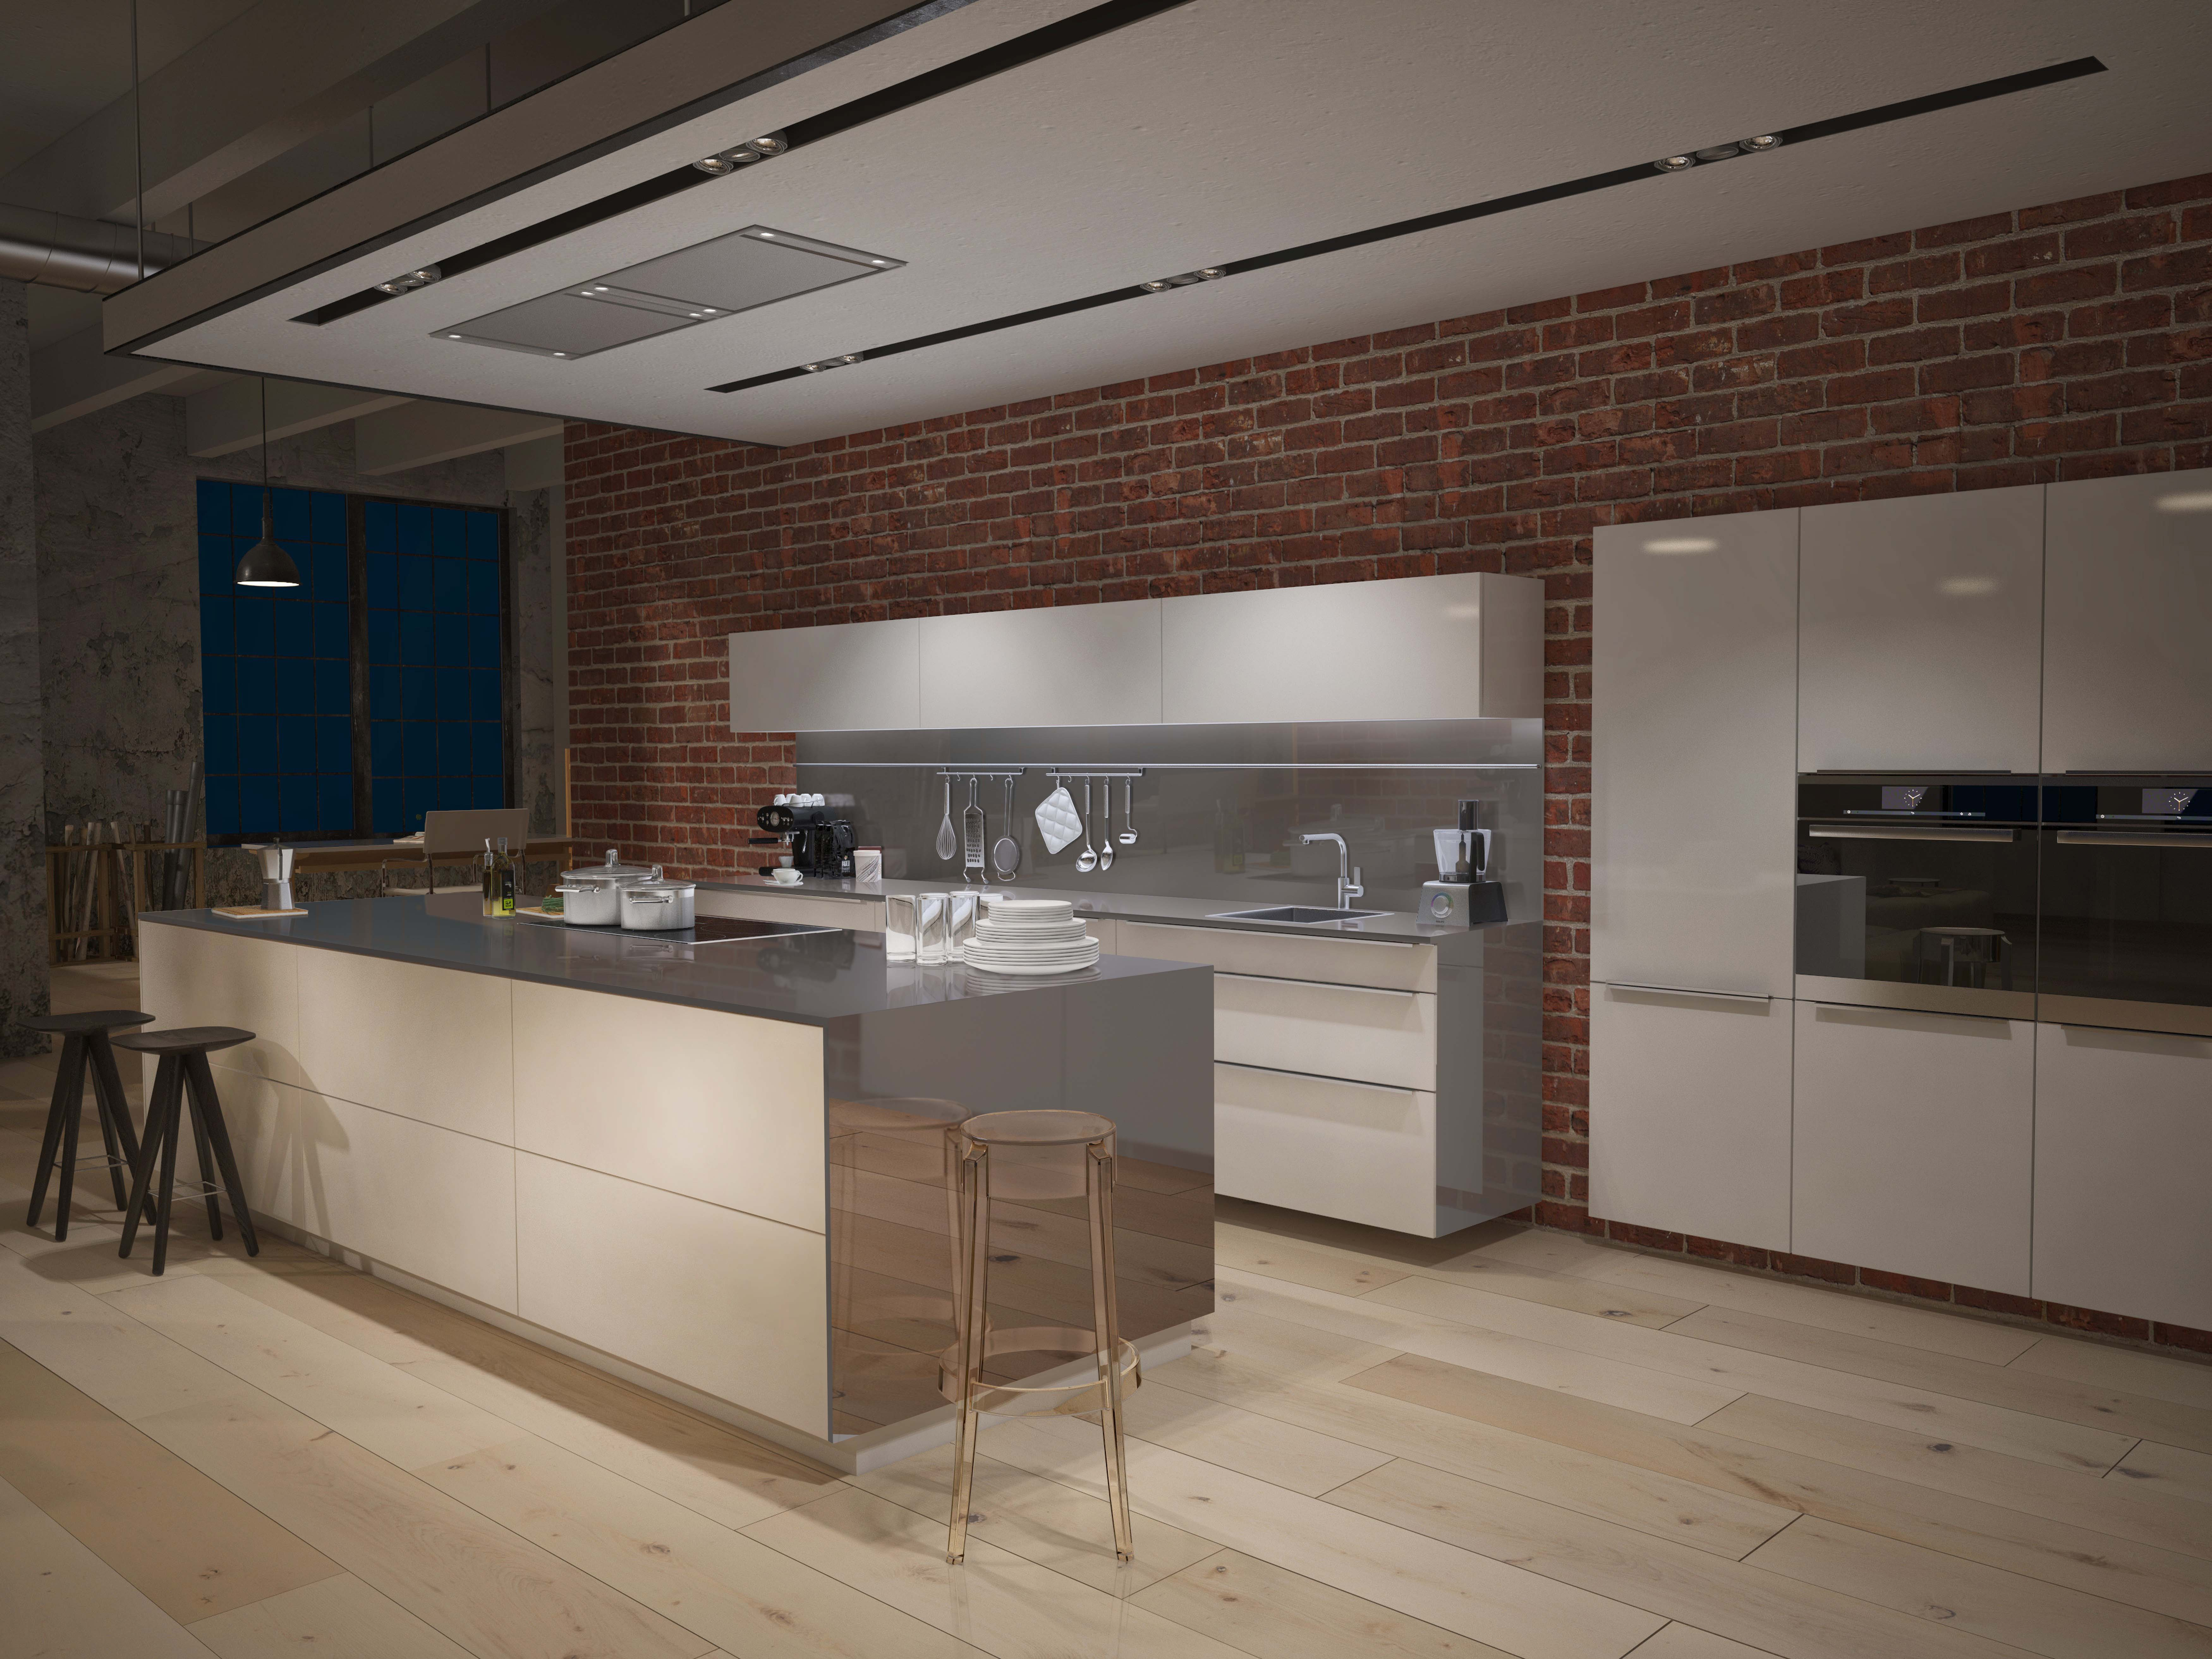 Kitchen trends 2017 australia - Lumina Highly Saturated Lumina Is A Warm Taupe That Brings An Earthy